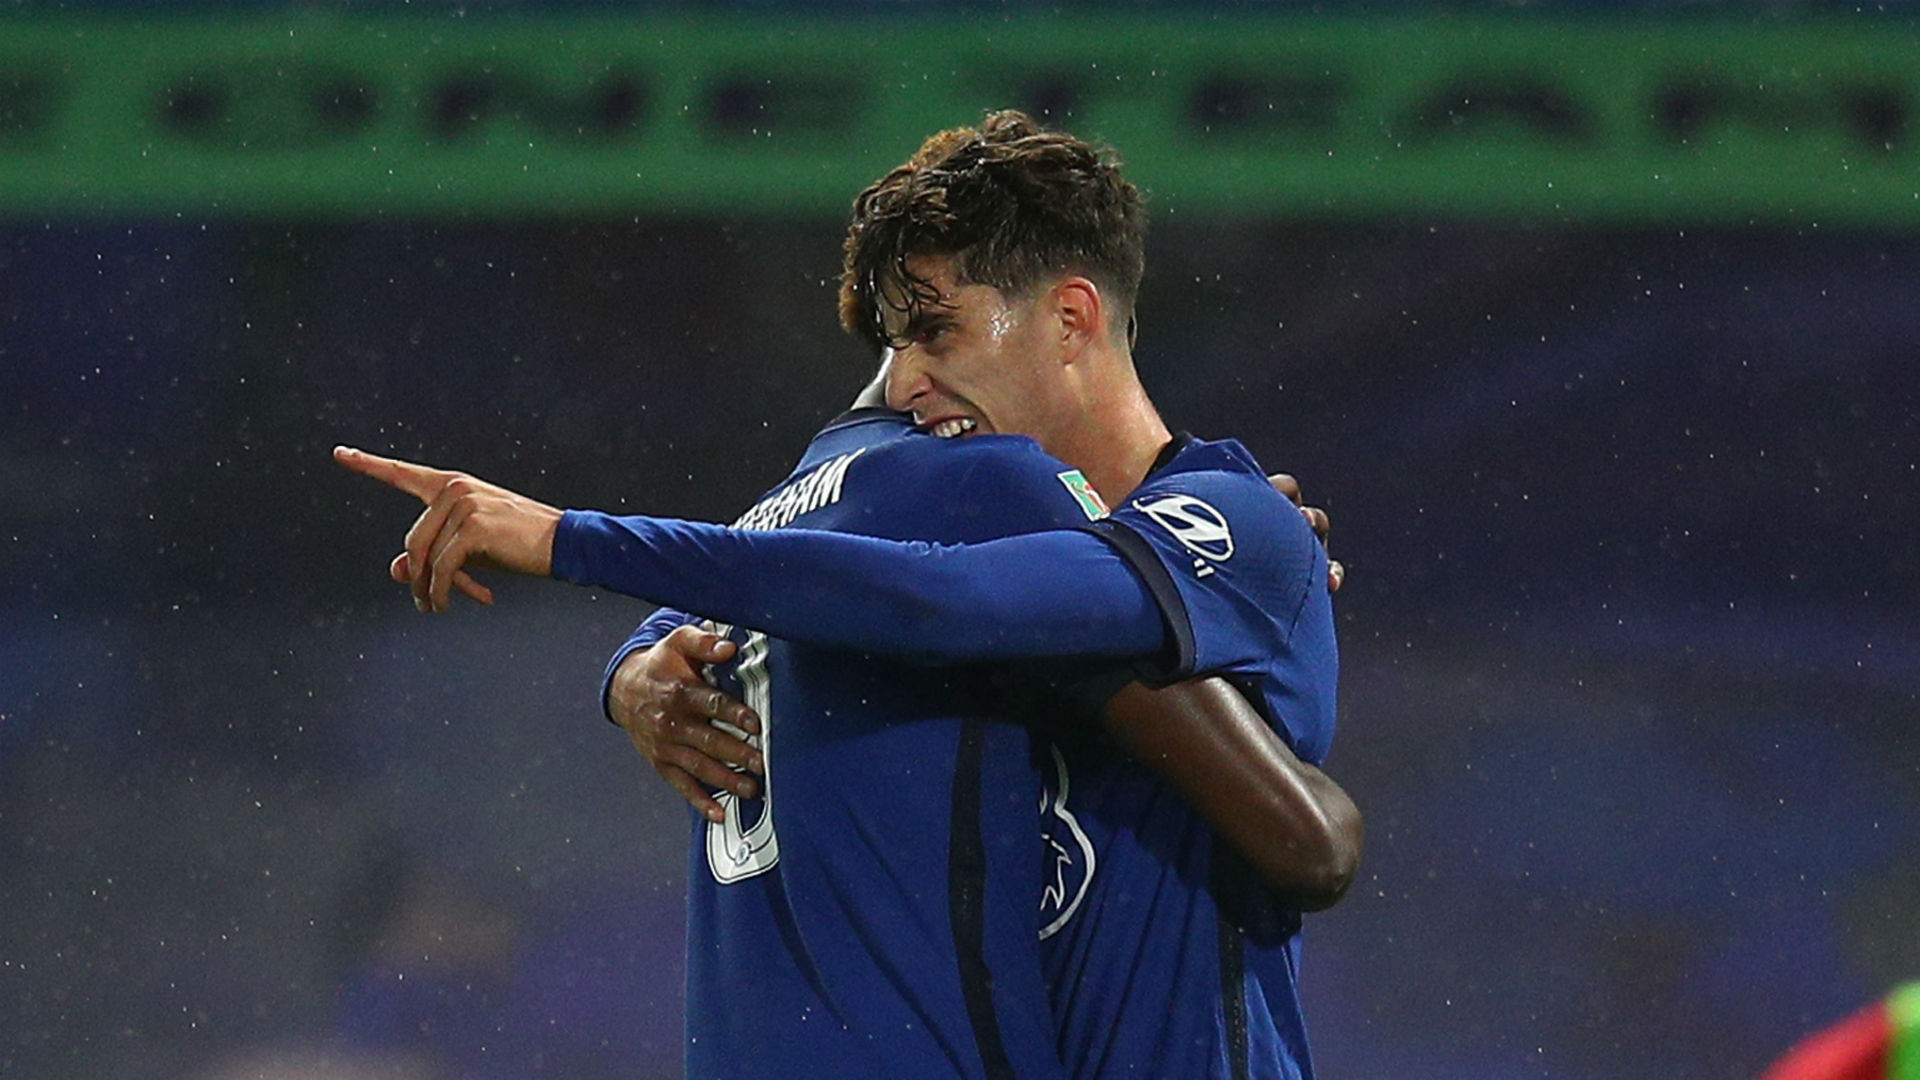 Lampard: The first of many great nights for Chelsea's hat-trick hero Havertz